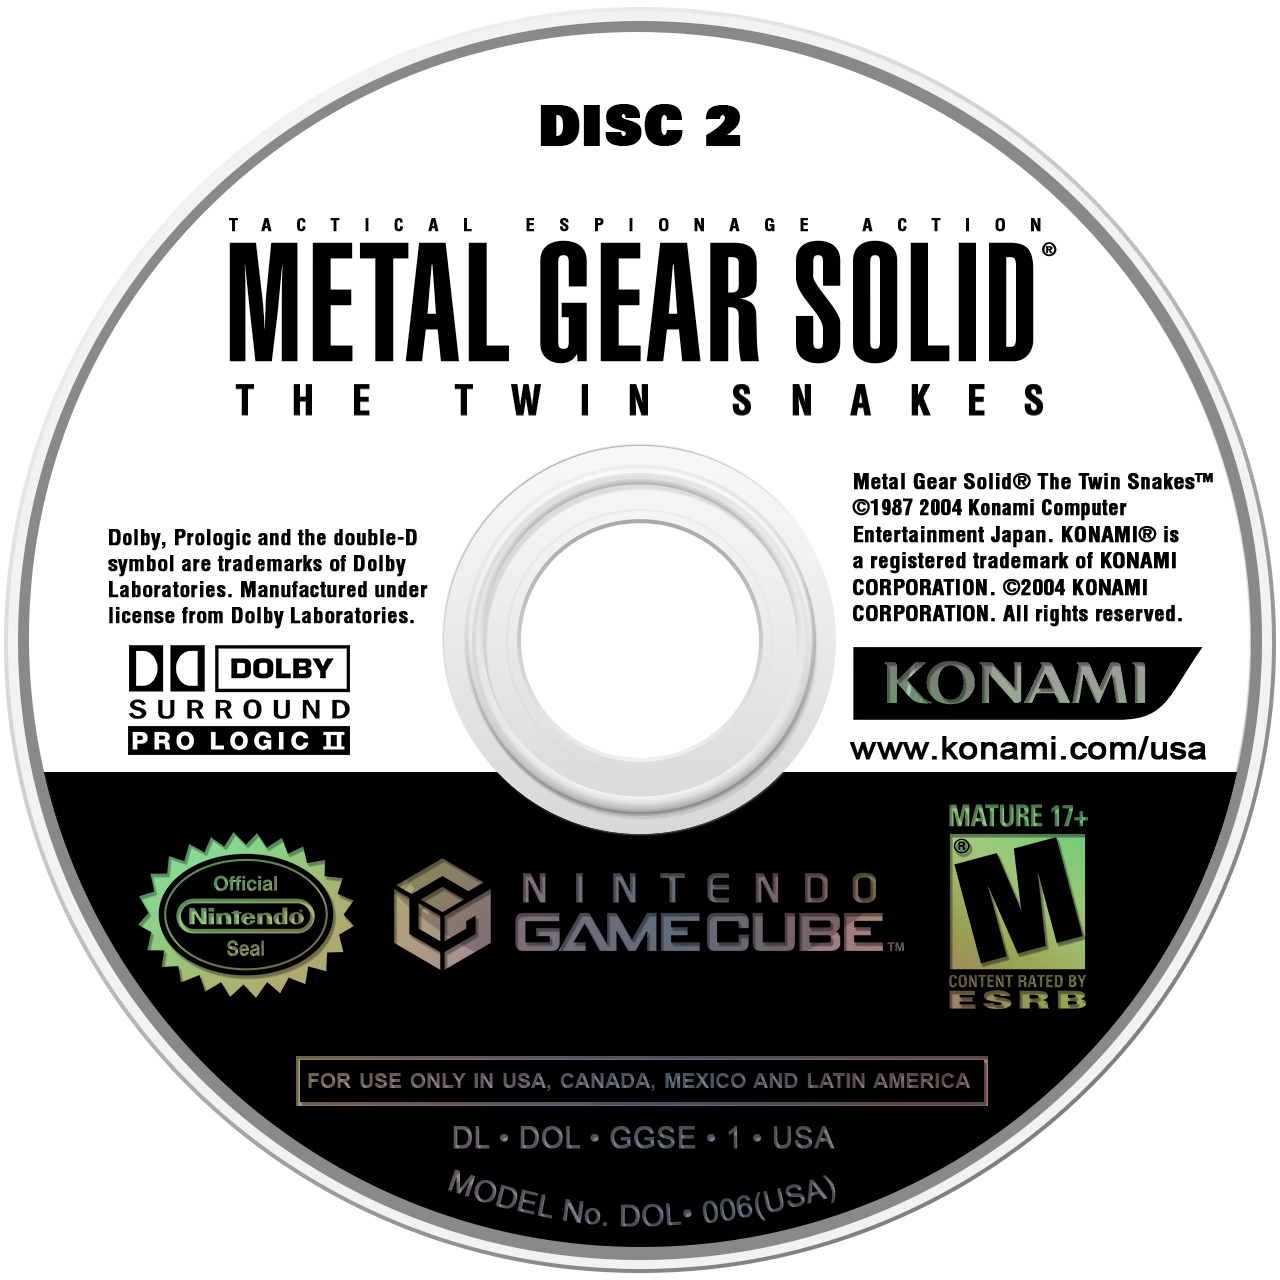 Metal Gear Solid: The Twin Snakes Details